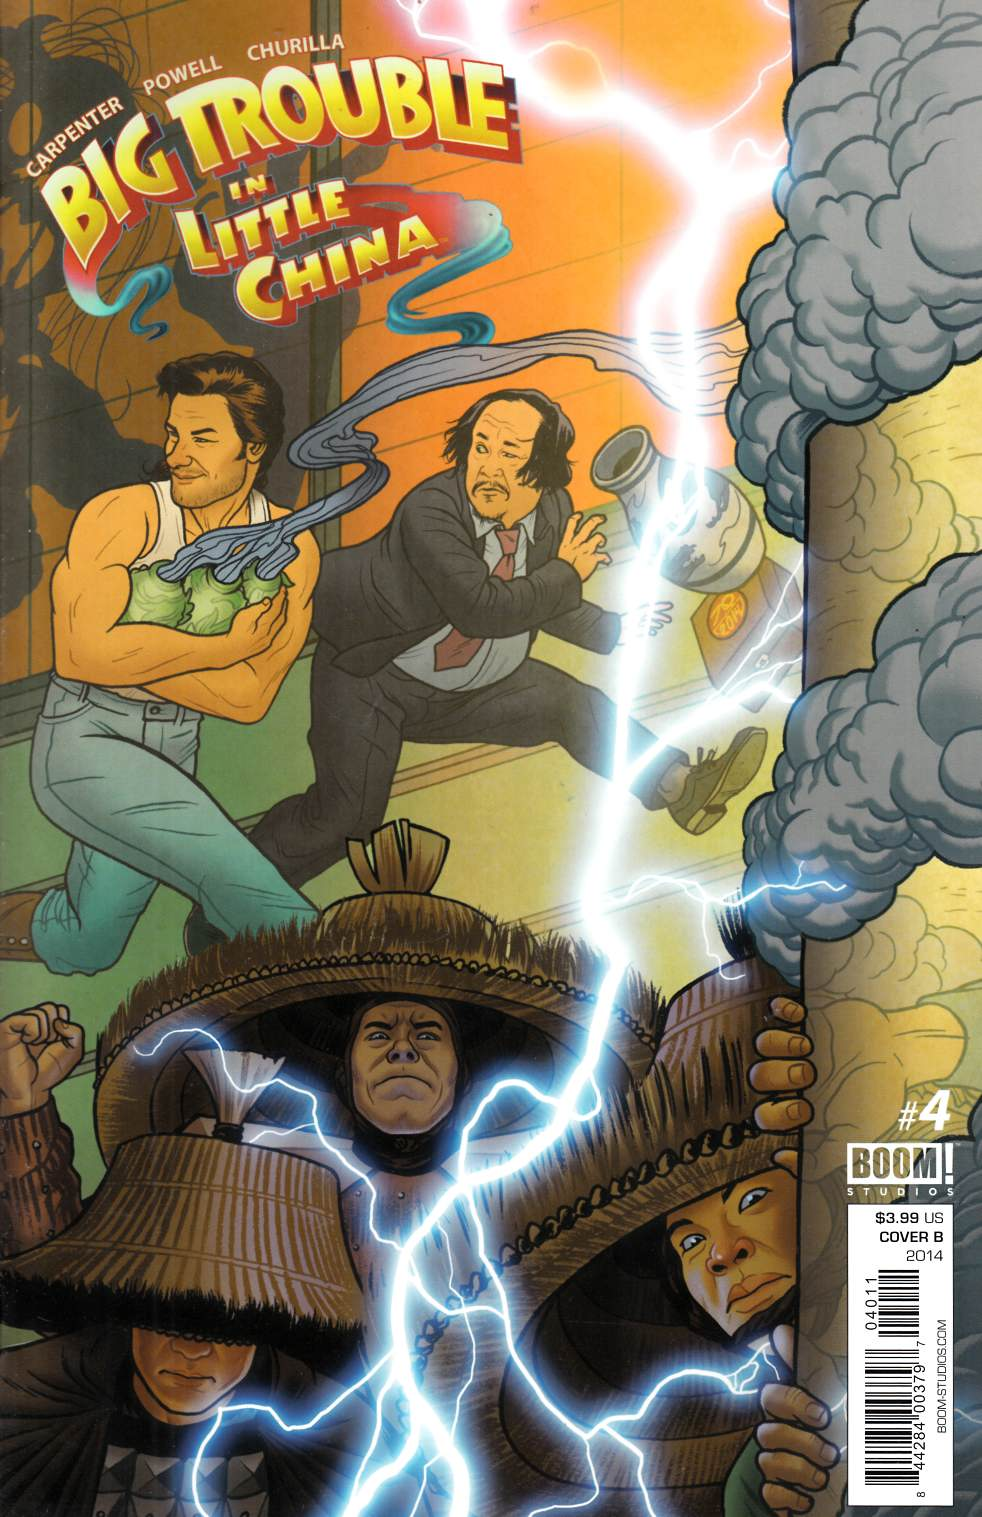 Big Trouble In Little China #4 Cover B [Comic] THUMBNAIL